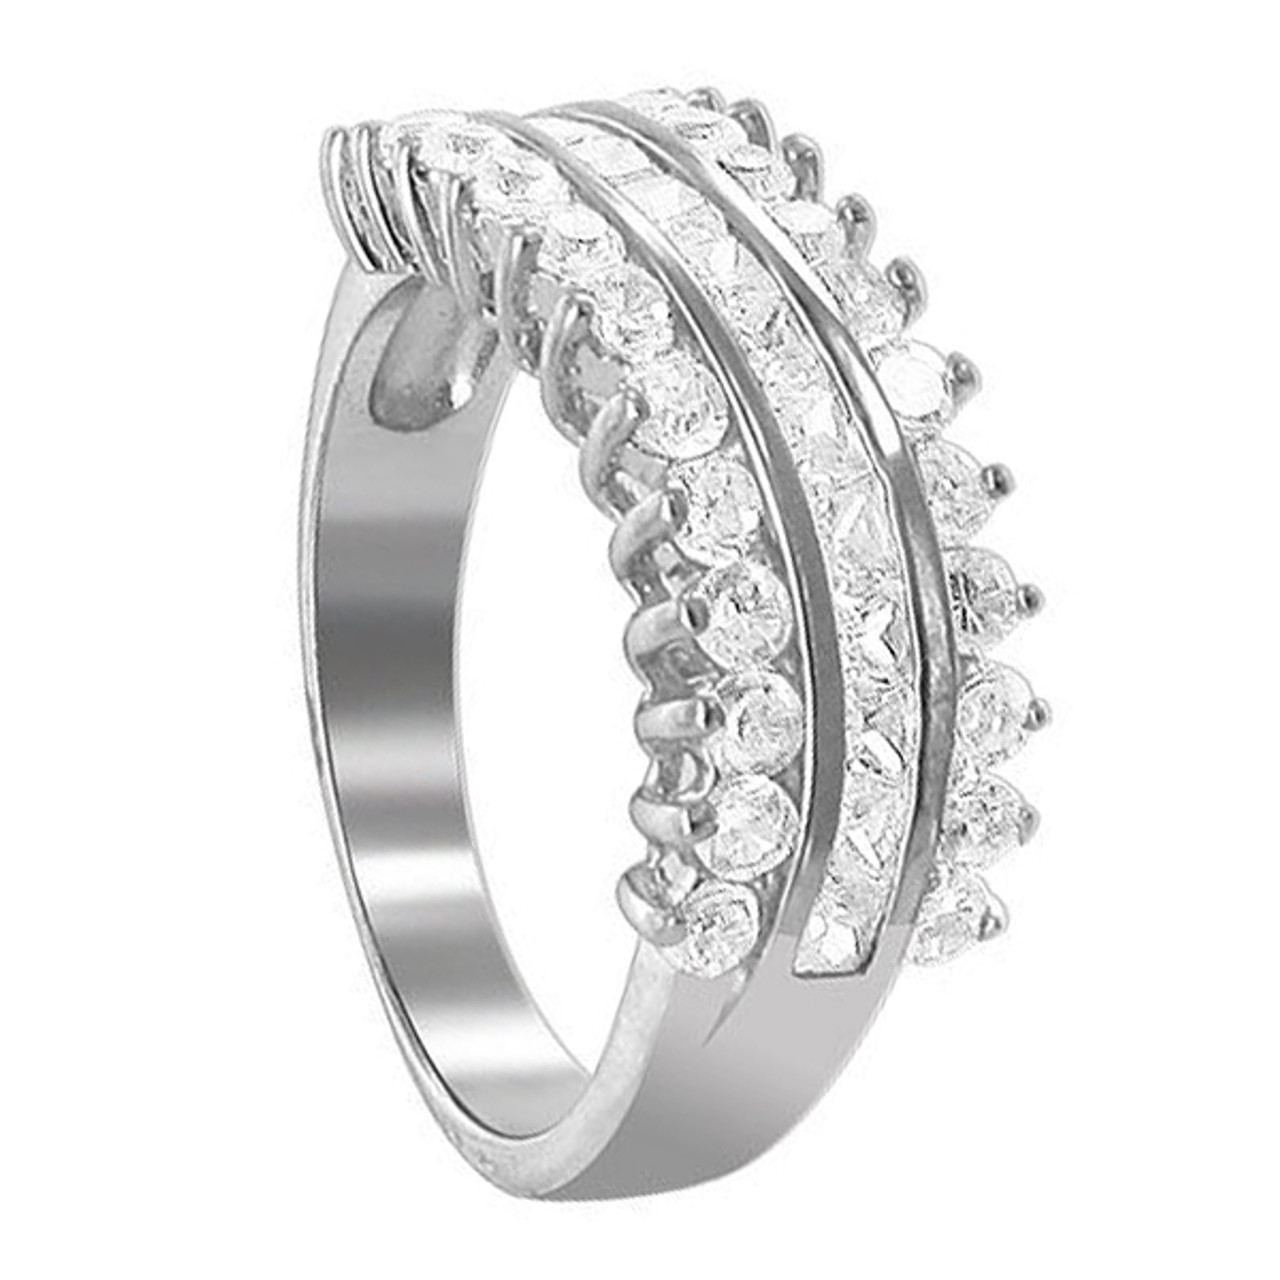 Princess Kylie Clear Cubic Zirconia Cross Designer Ring Rhodium Plated Sterling Silver